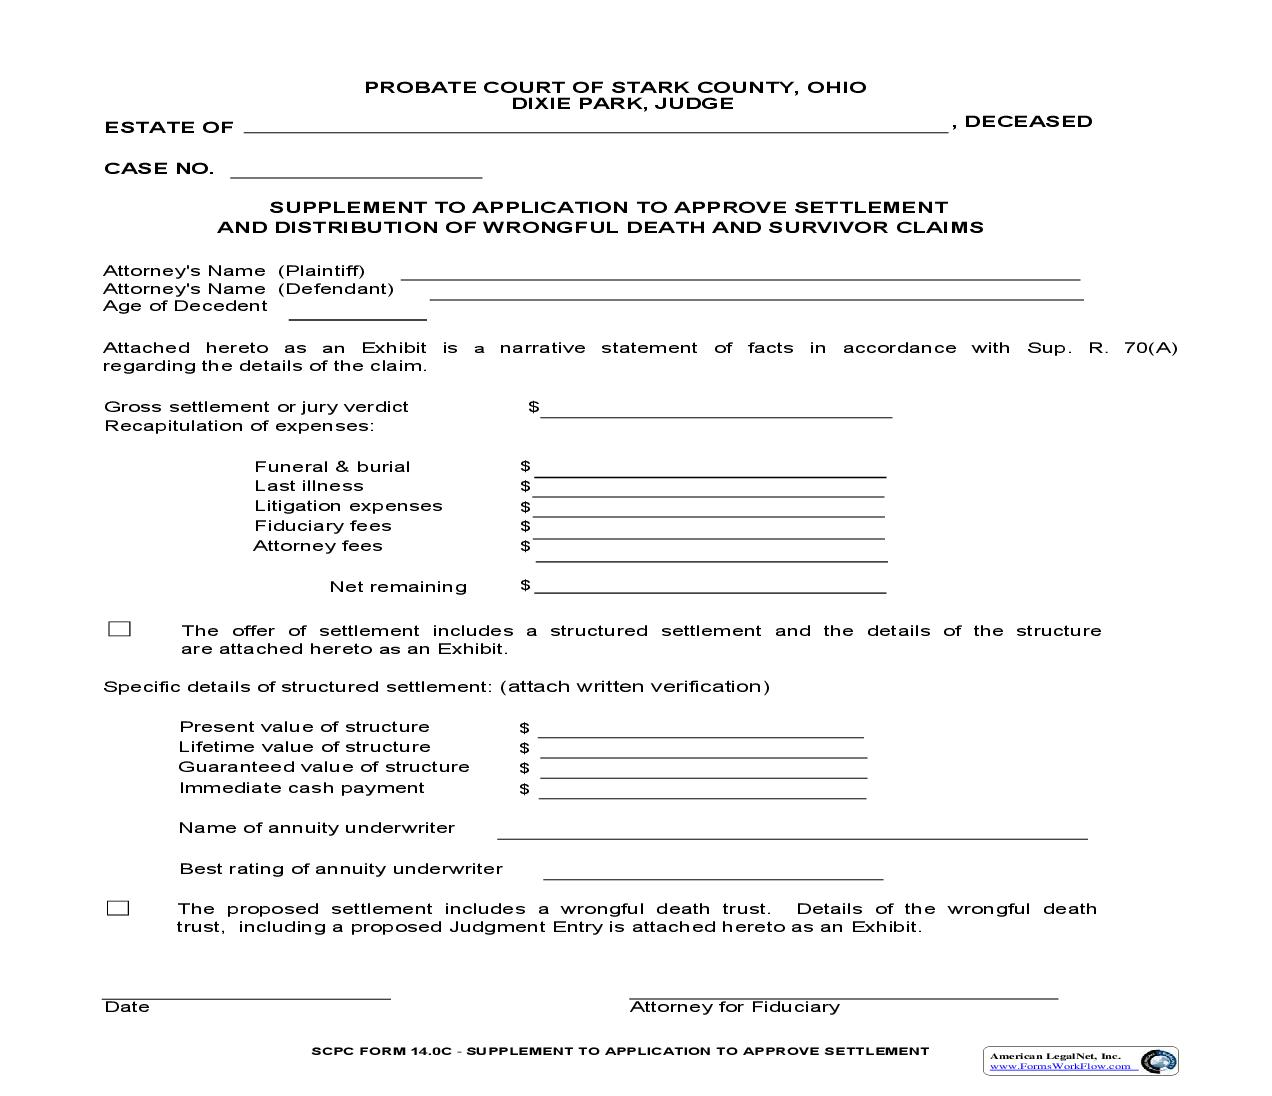 Supplement To Application To Approve Settlement And Distribution Of Wrongful Death And Survival Claims {14.0C} | Pdf Fpdf Doc Docx | Ohio